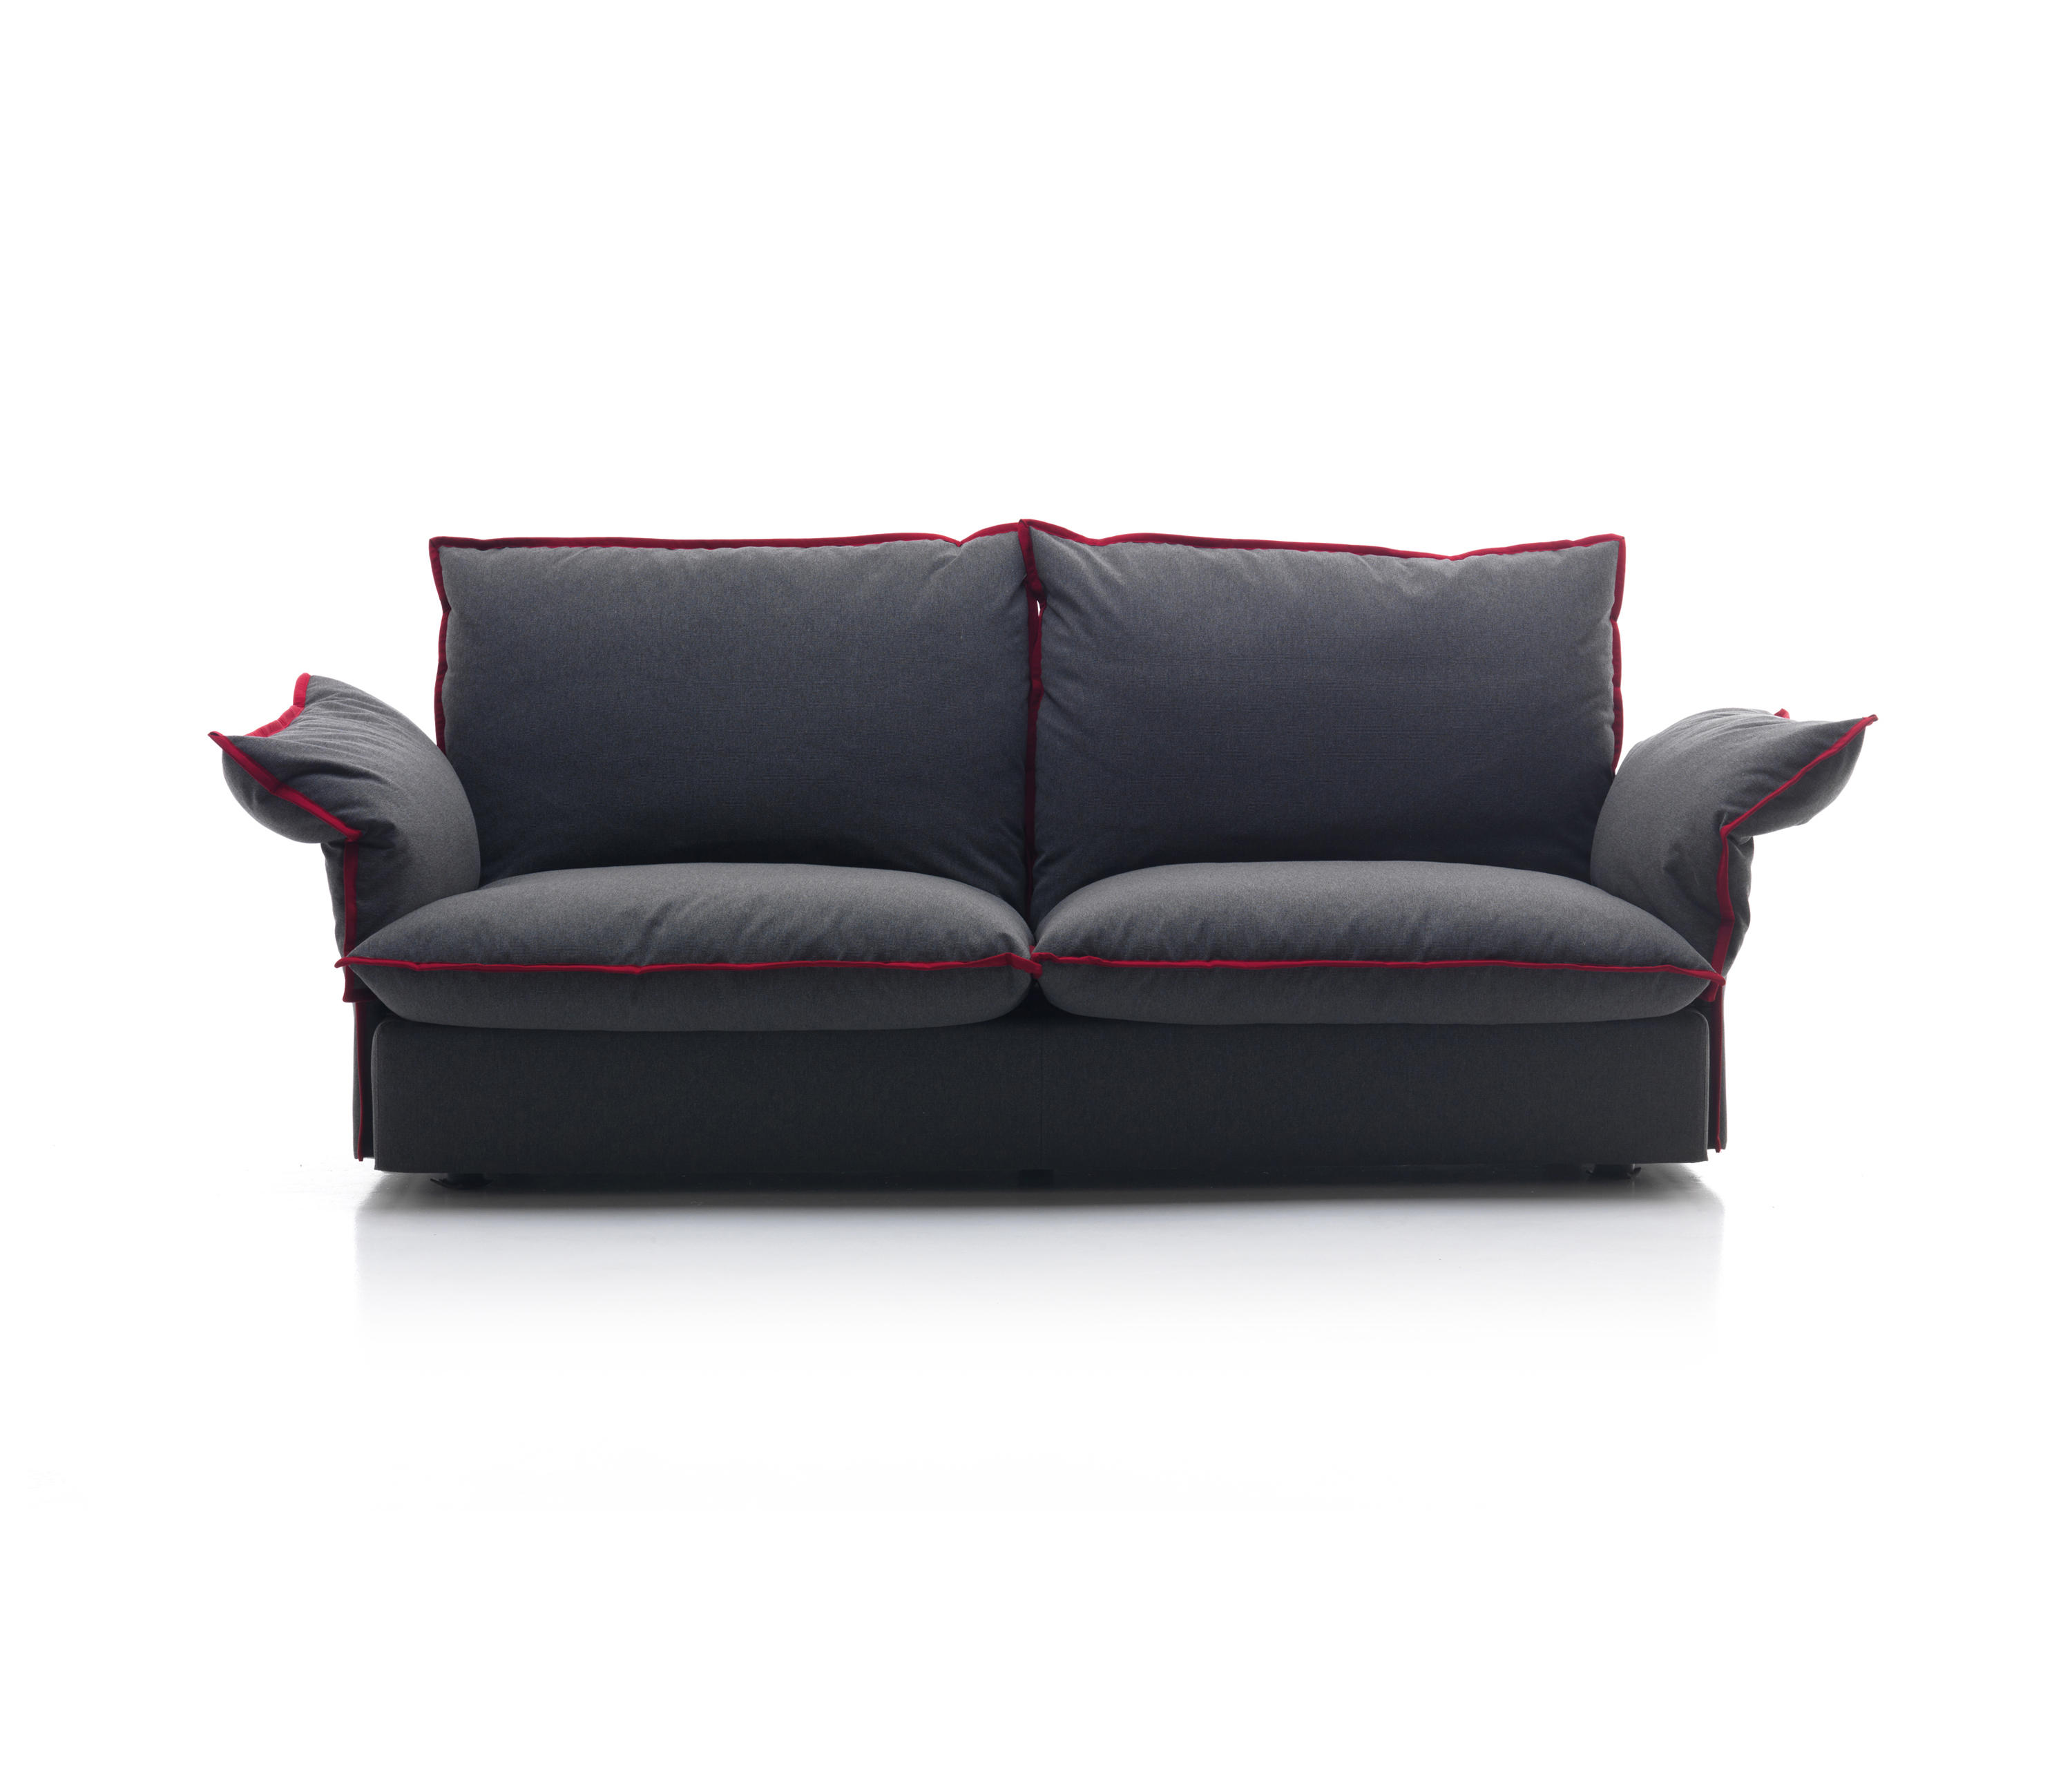 Peachy Do Dolly 2 Seater Sofa Architonic Gamerscity Chair Design For Home Gamerscityorg